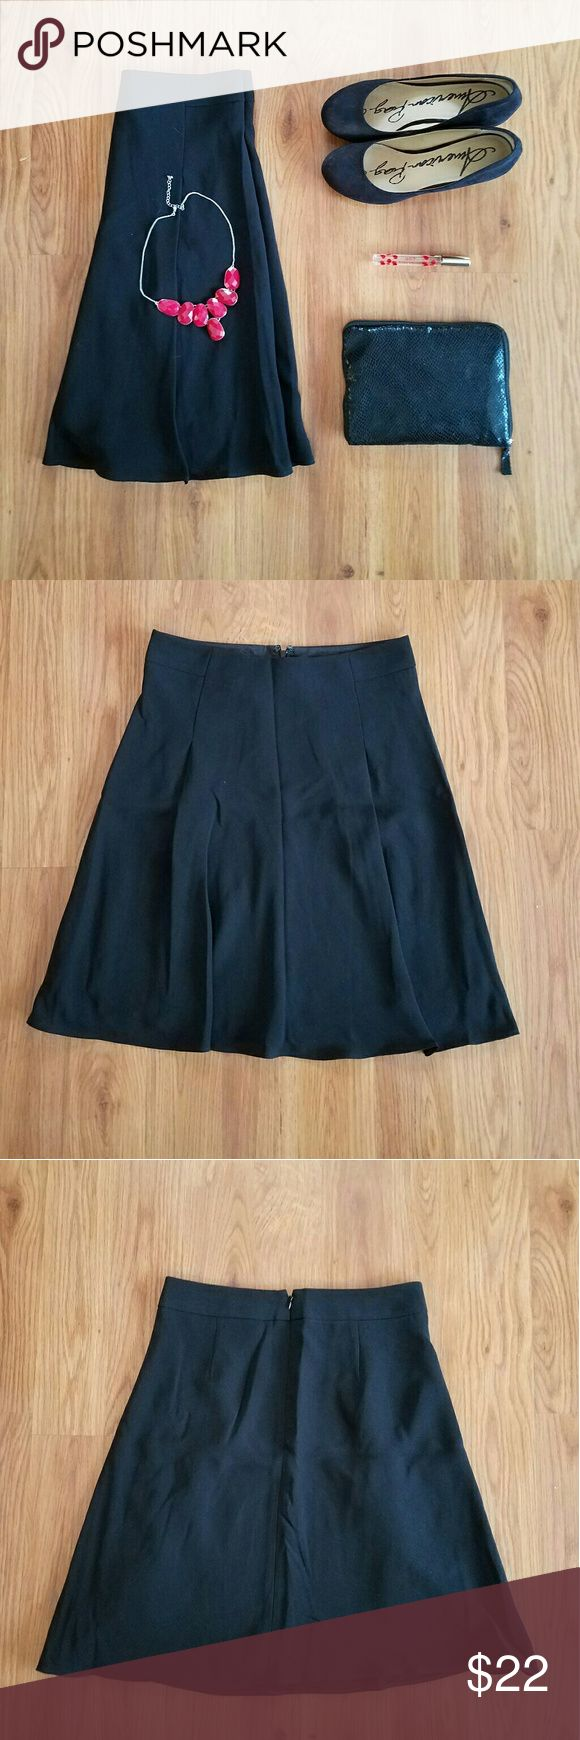 The Limited black high waist skater skirt A few big pleats in front. Zipper in center back. Lining on the inside. 100% polyester. The Limited Skirts Circle & Skater